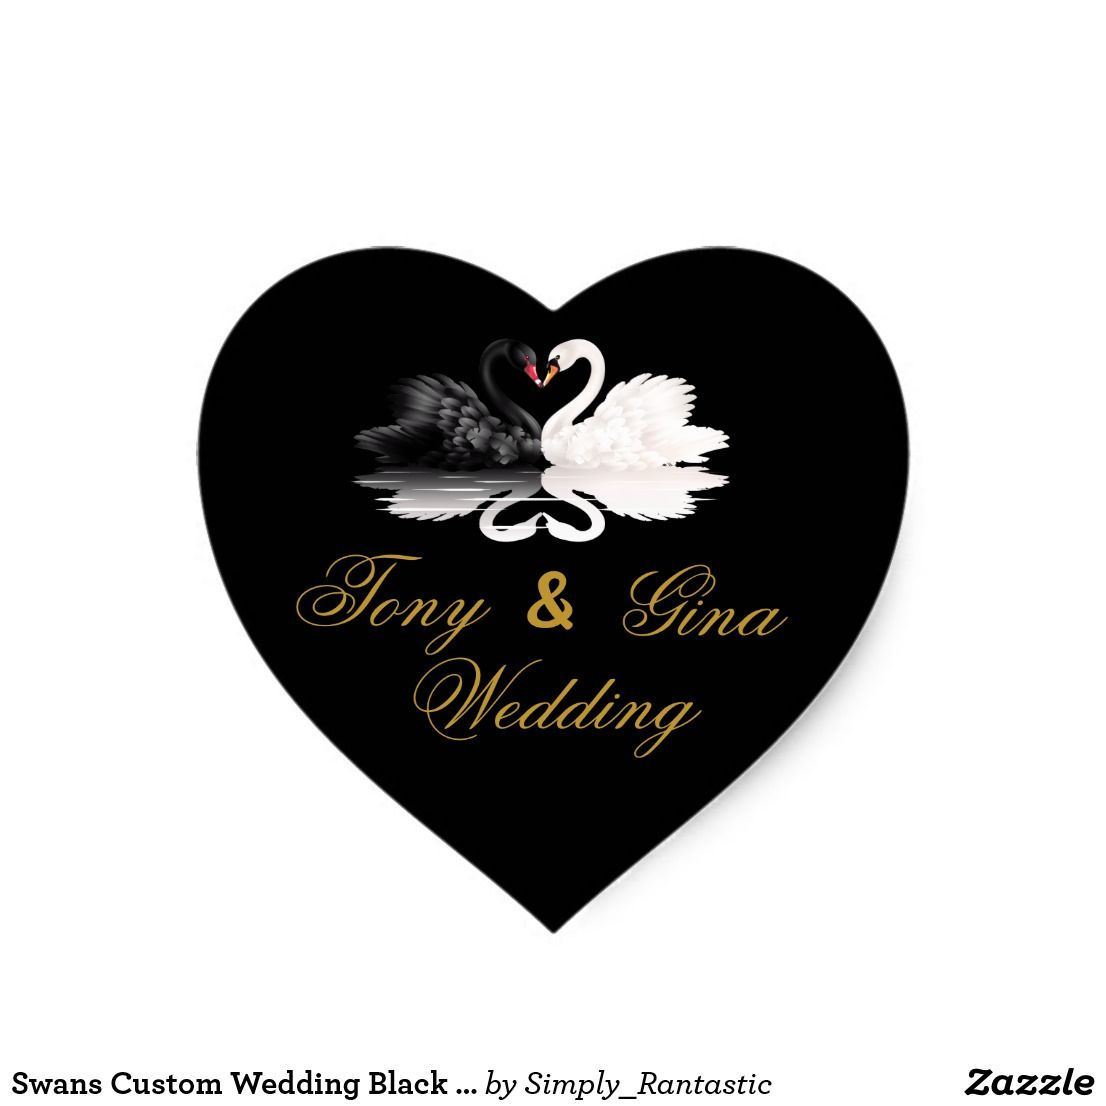 Swans custom wedding black heart stickers wedding collection